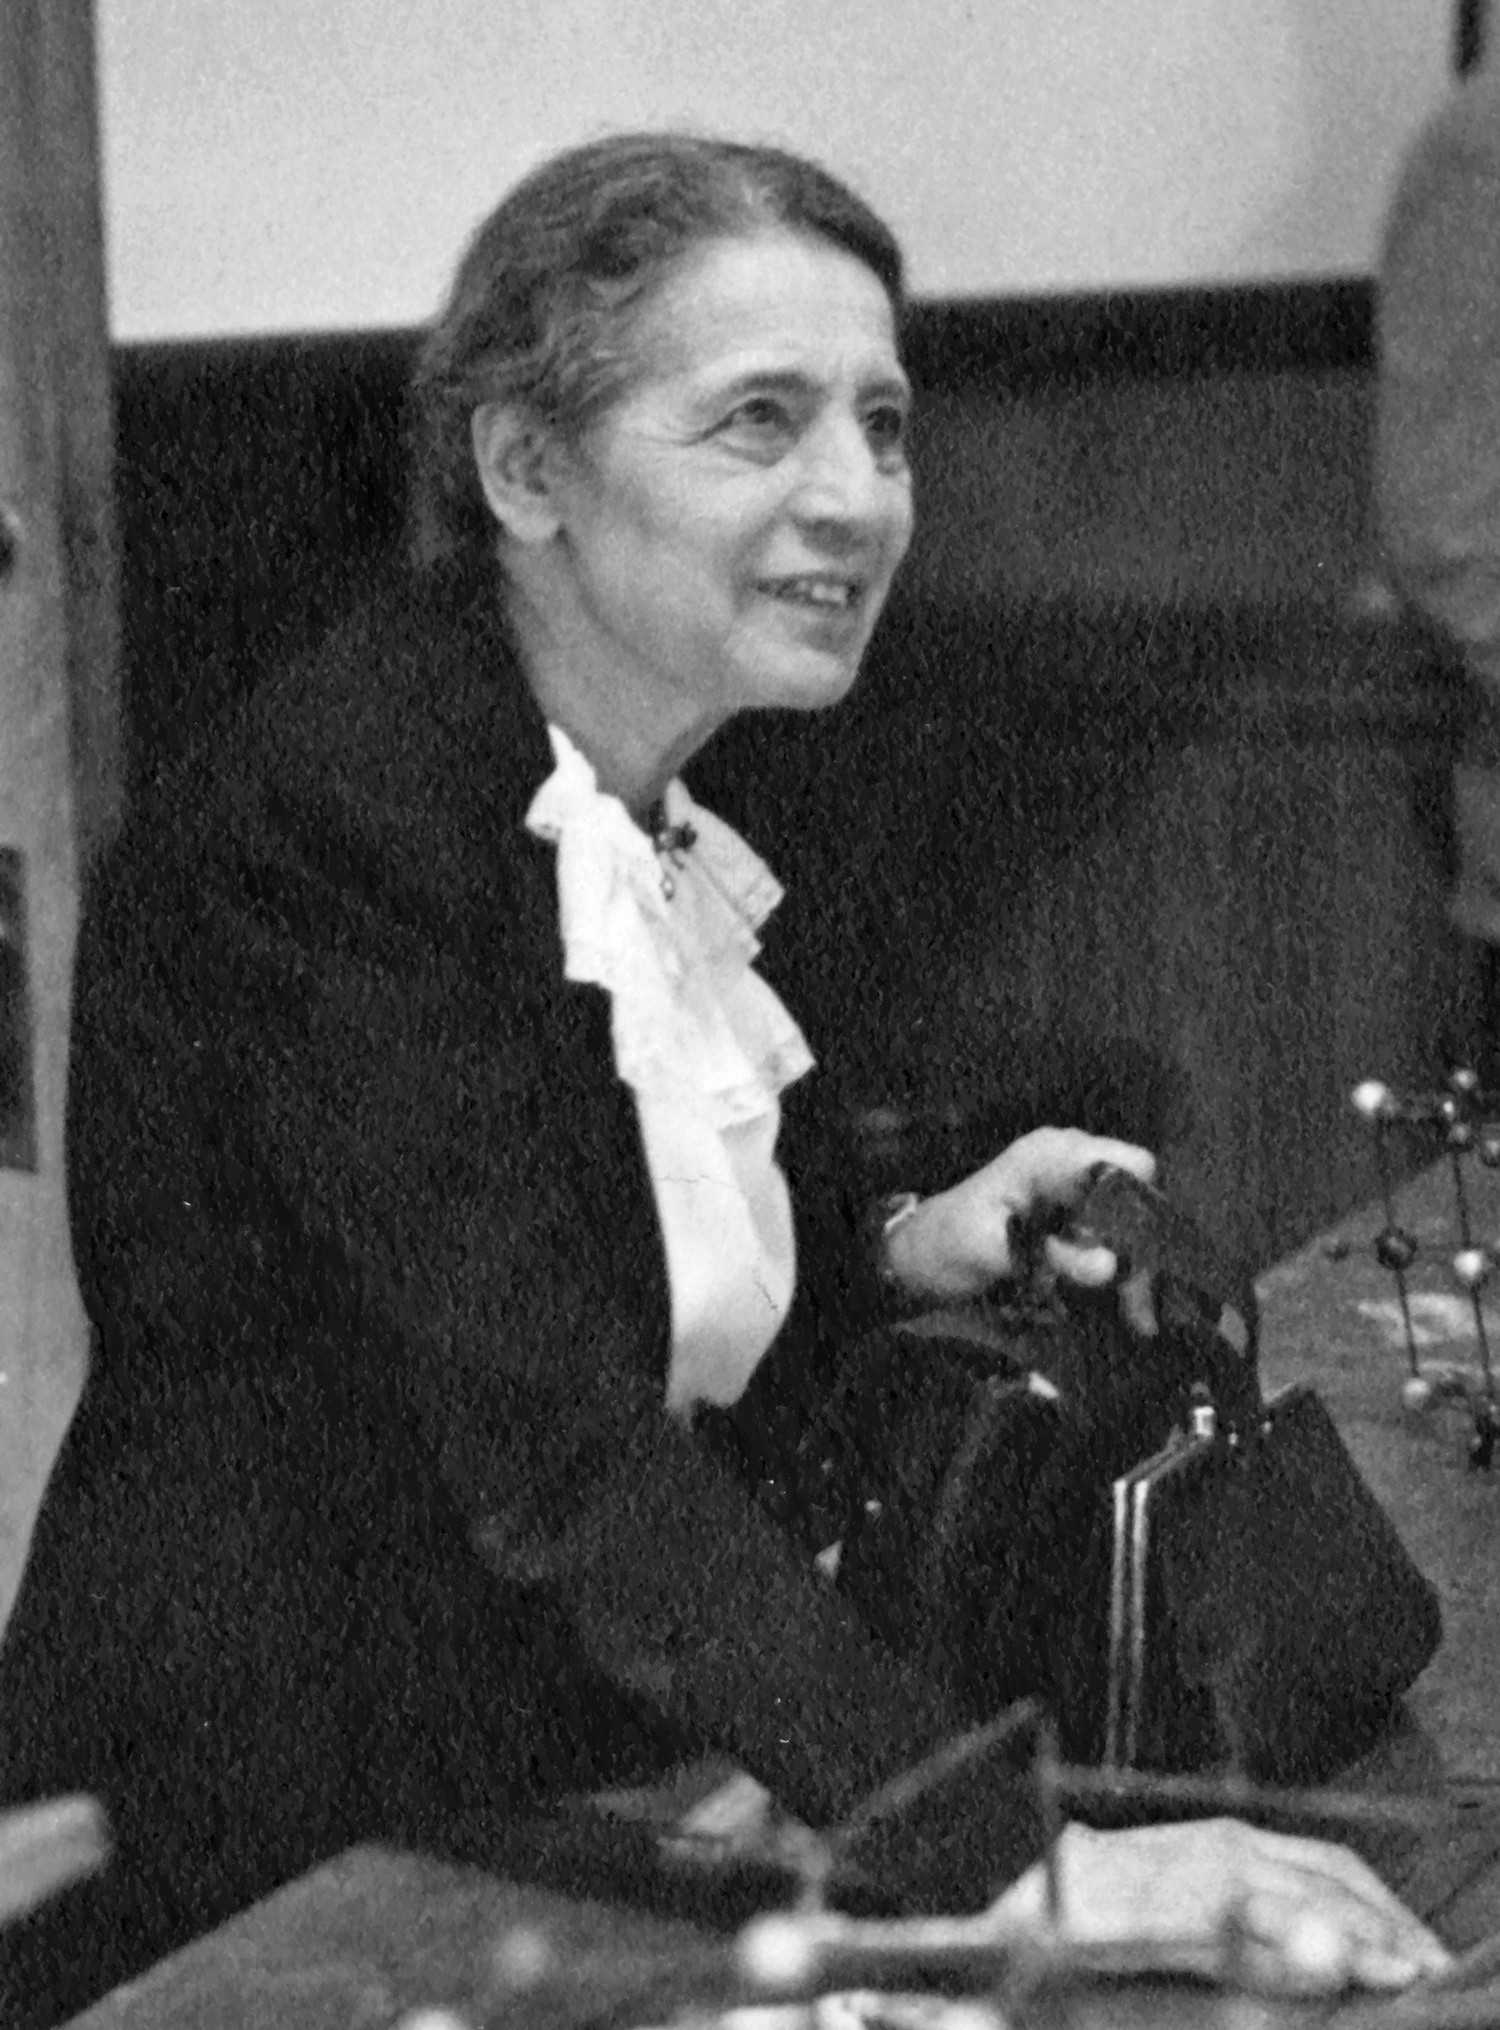 A física Lise Meitner (Foto: Smithsonian Institution/Wikimedia Commons)